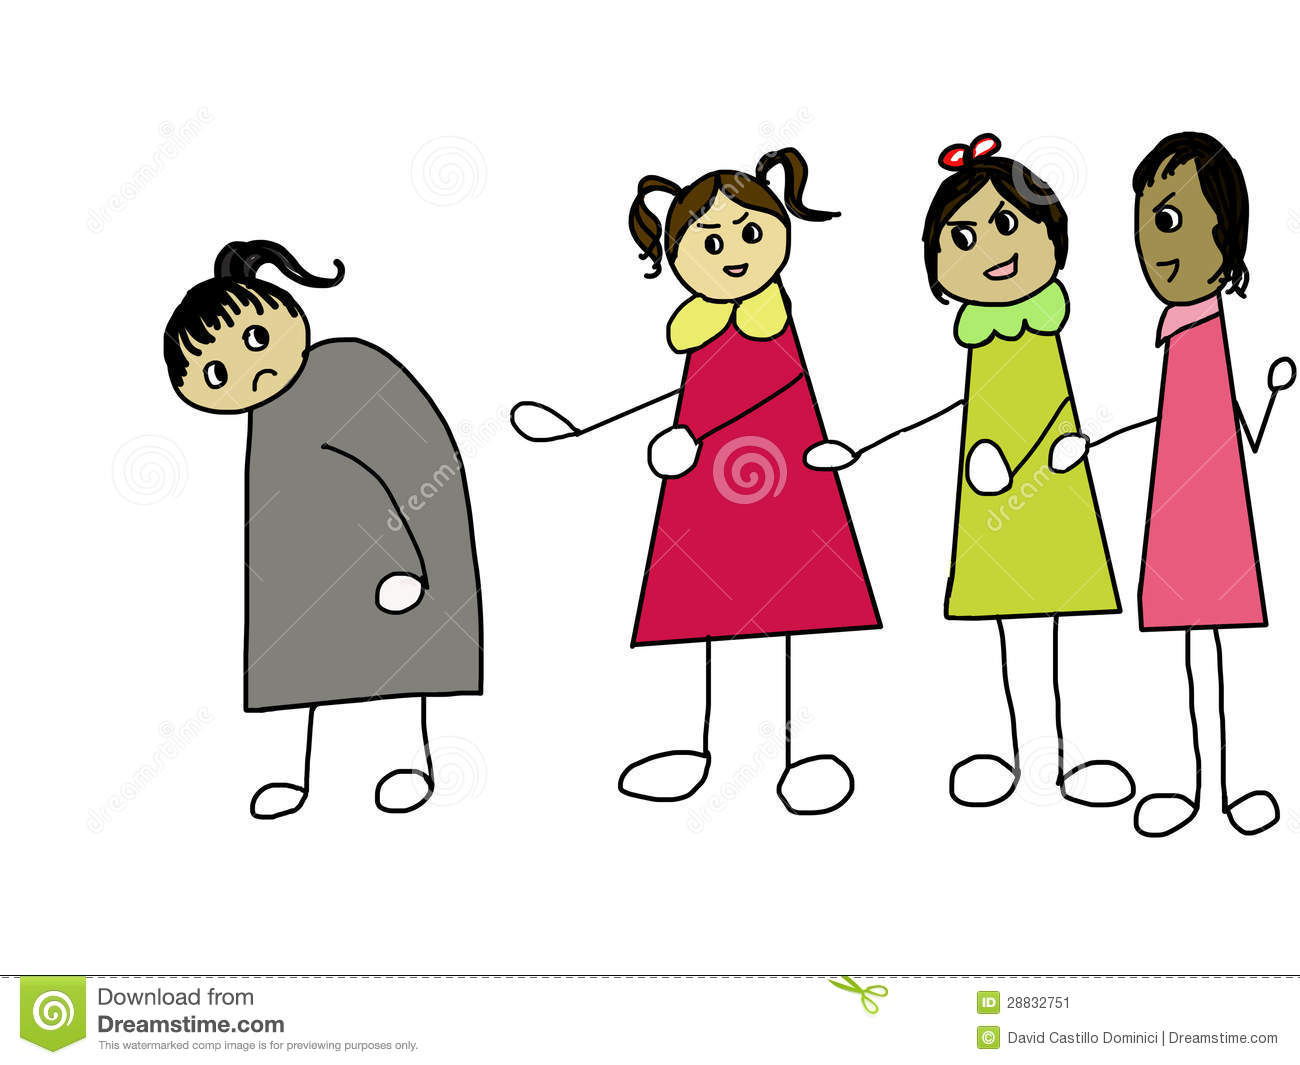 Bully clipart social exclusion, Bully social exclusion.